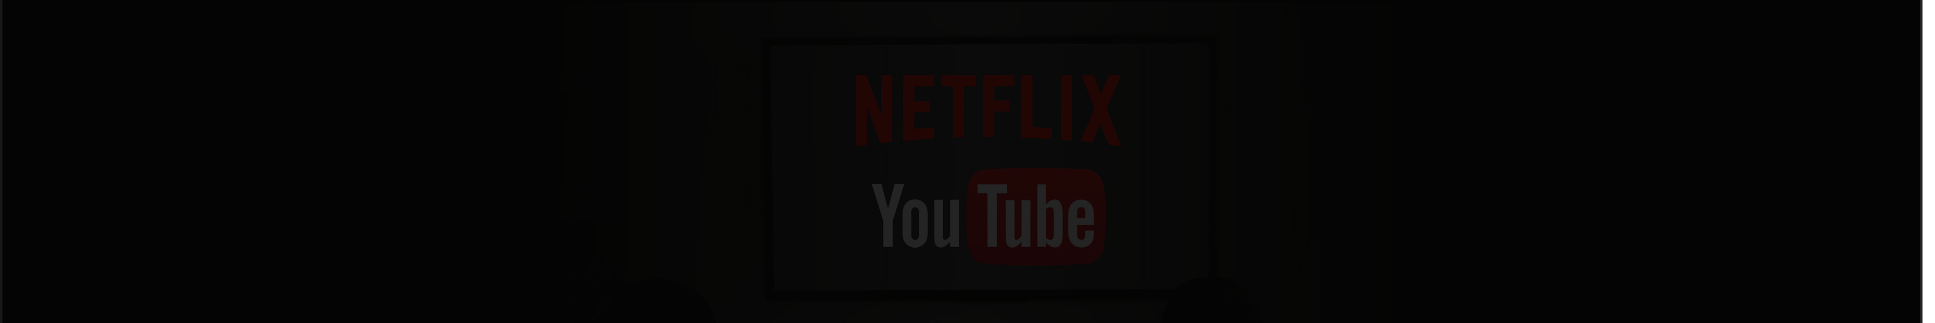 Need an estimate for your own video streaming app like Netflix, Amazon, Hulu or Twitch?